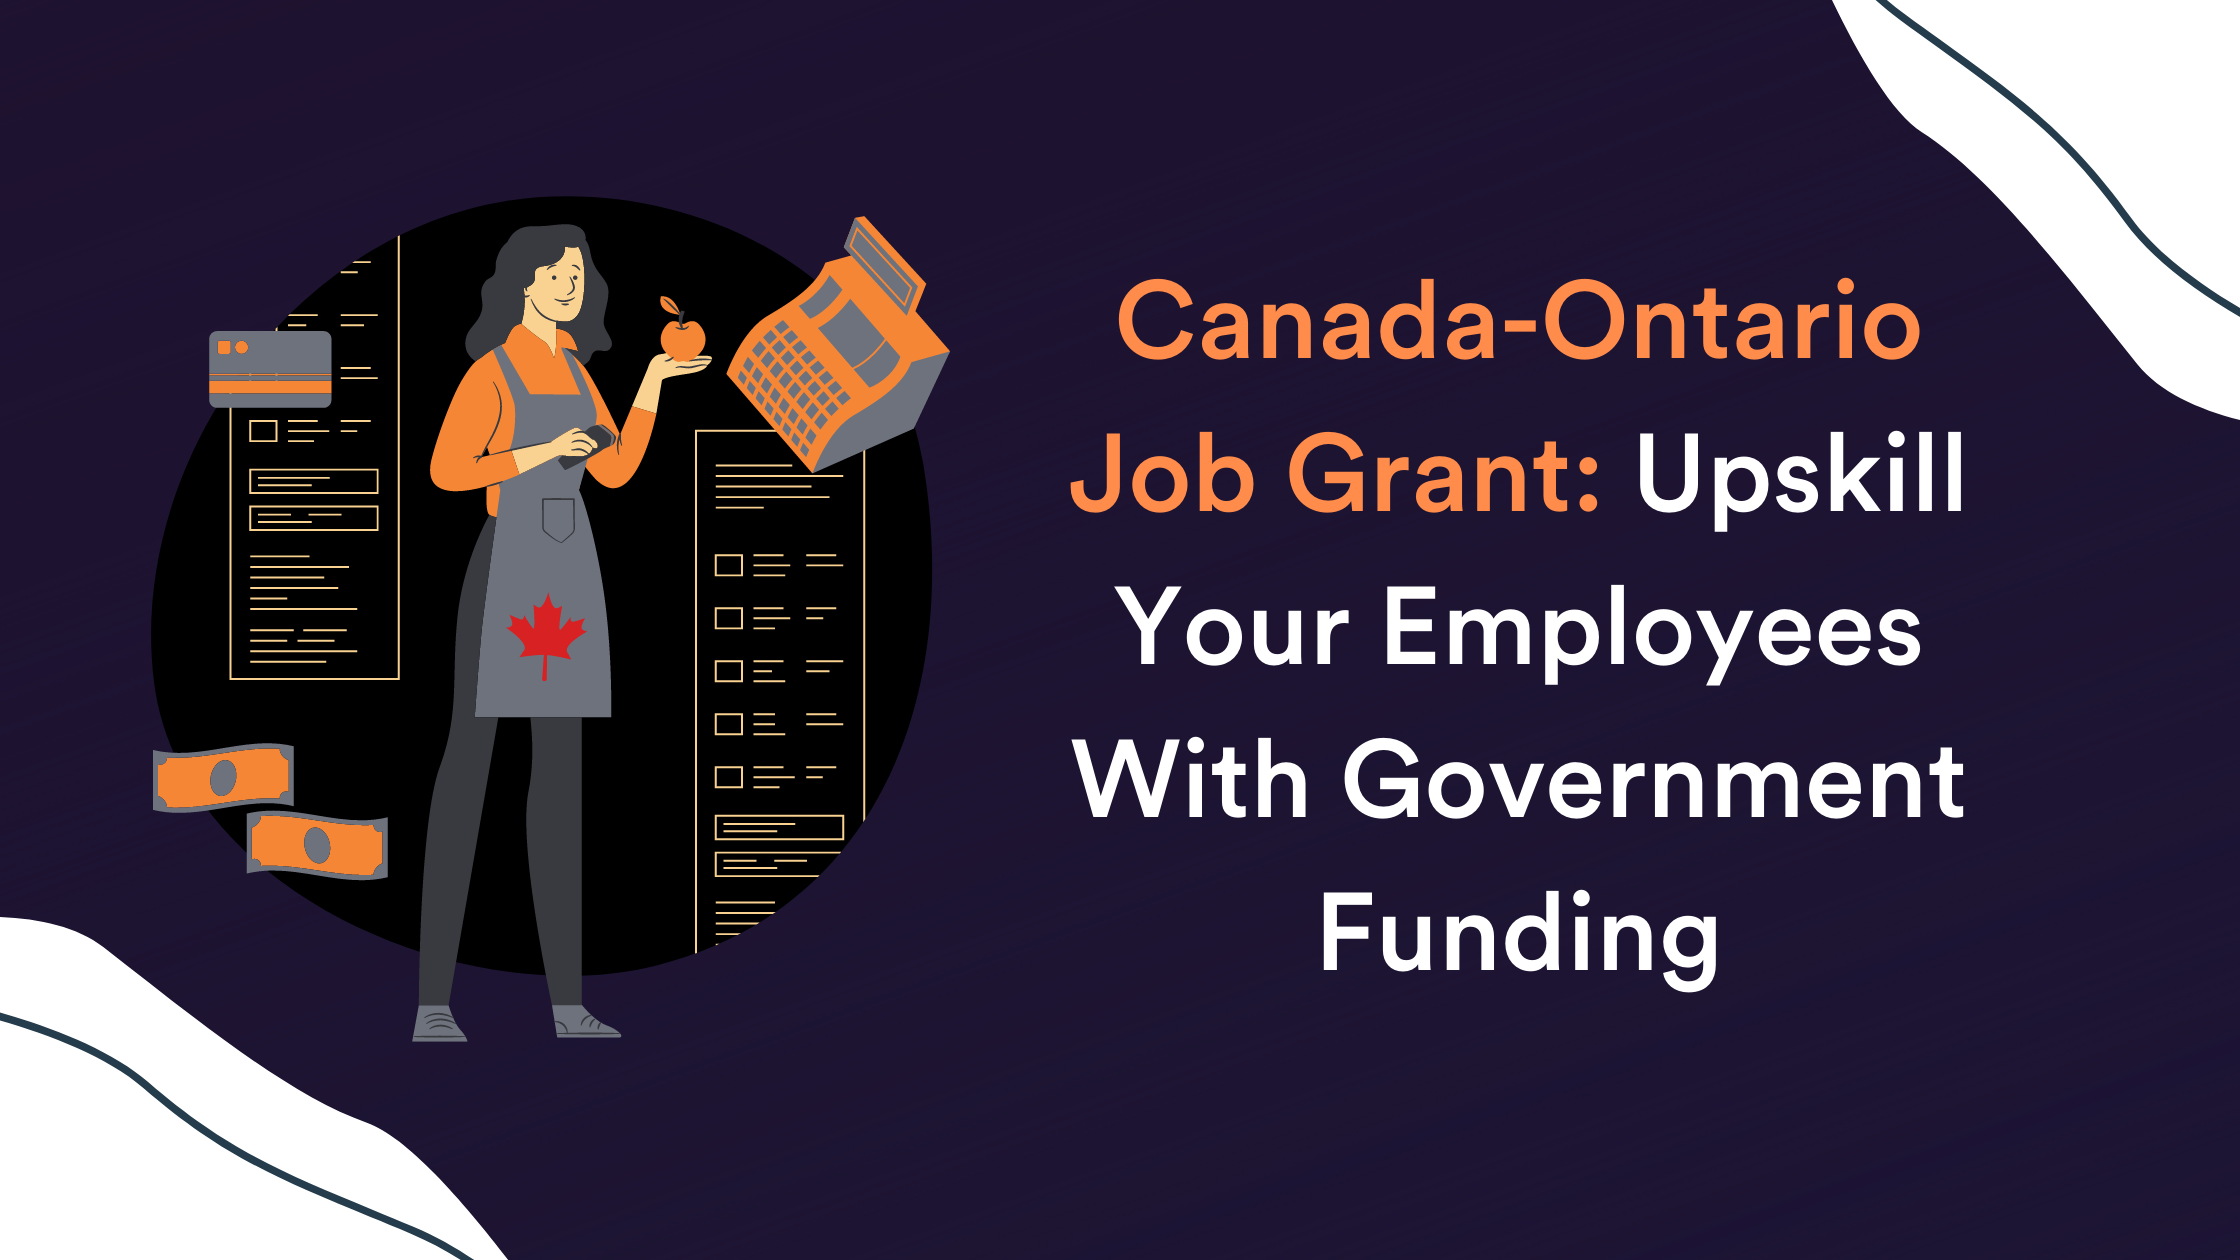 Canada-Ontario Job Grant: Upskill Your Employees With Government Funding